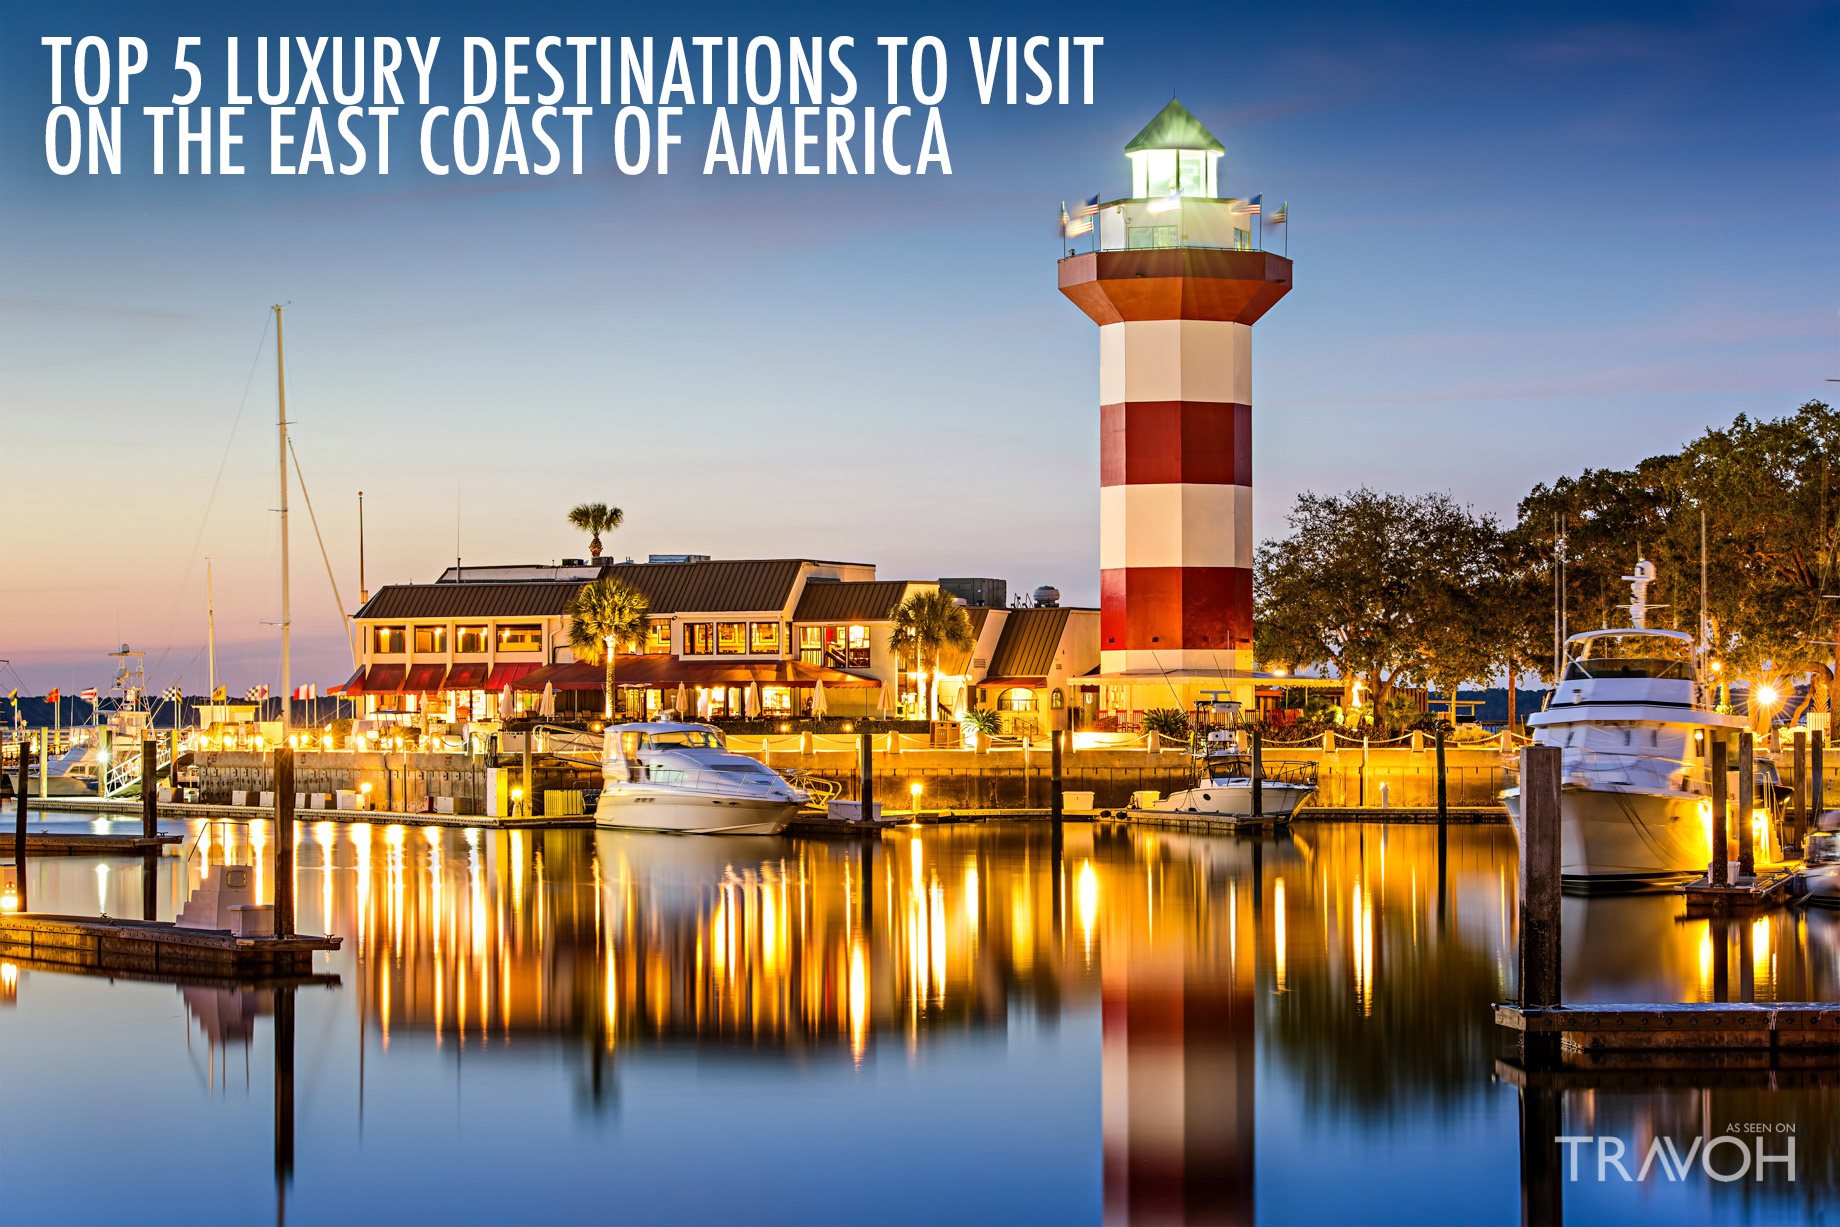 Top 5 Luxury Destinations to Visit on the East Coast of America